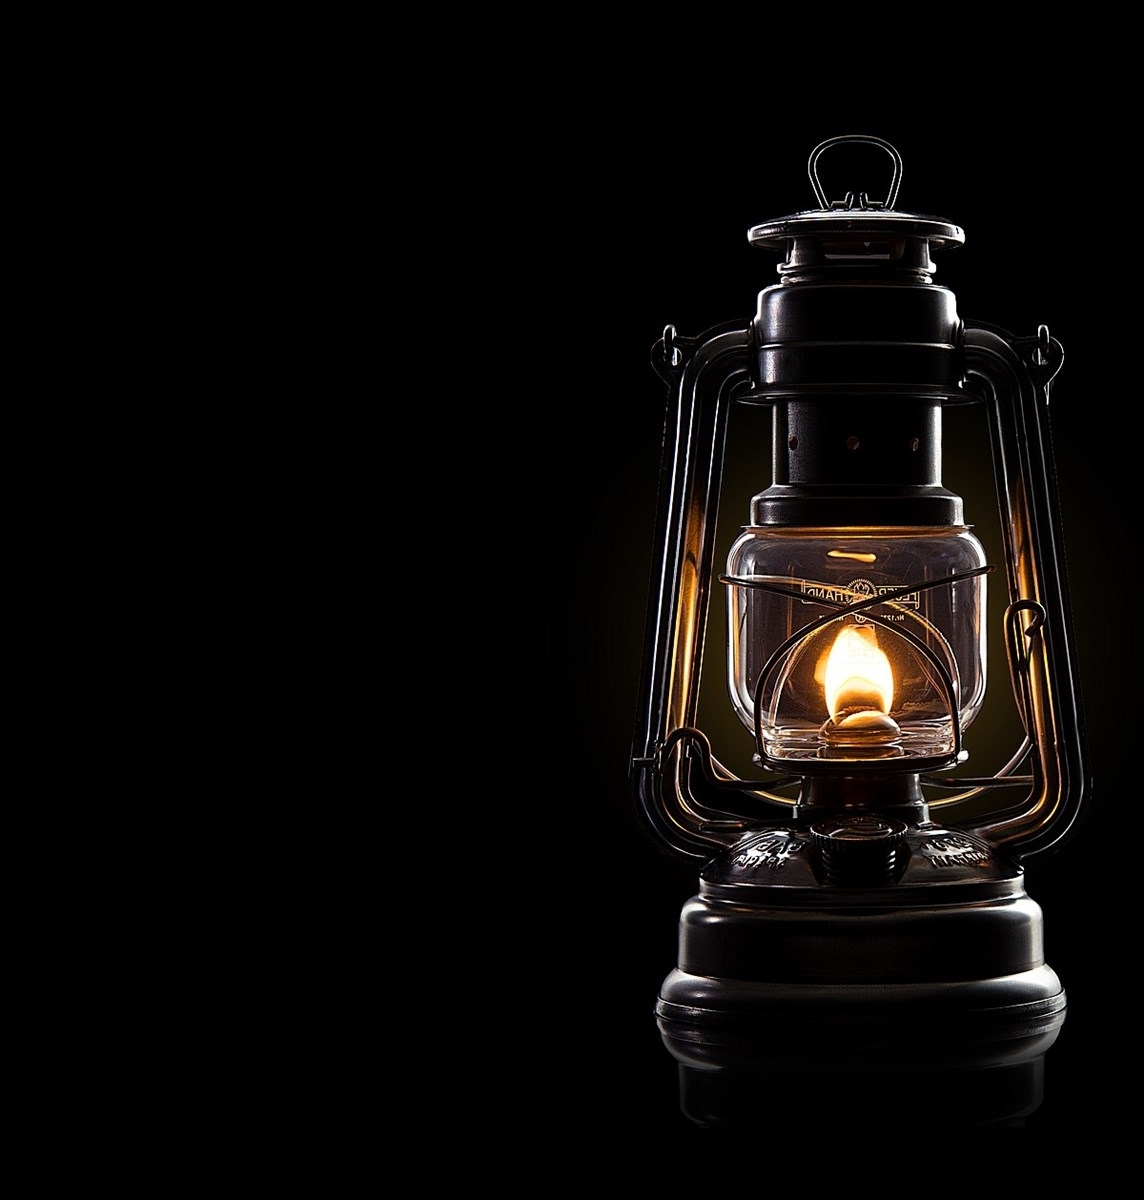 Outdoor Storm Lanterns Throughout Famous Original Feuerhand Storm Lamps In All Colours – Savvysurf.co (View 10 of 20)